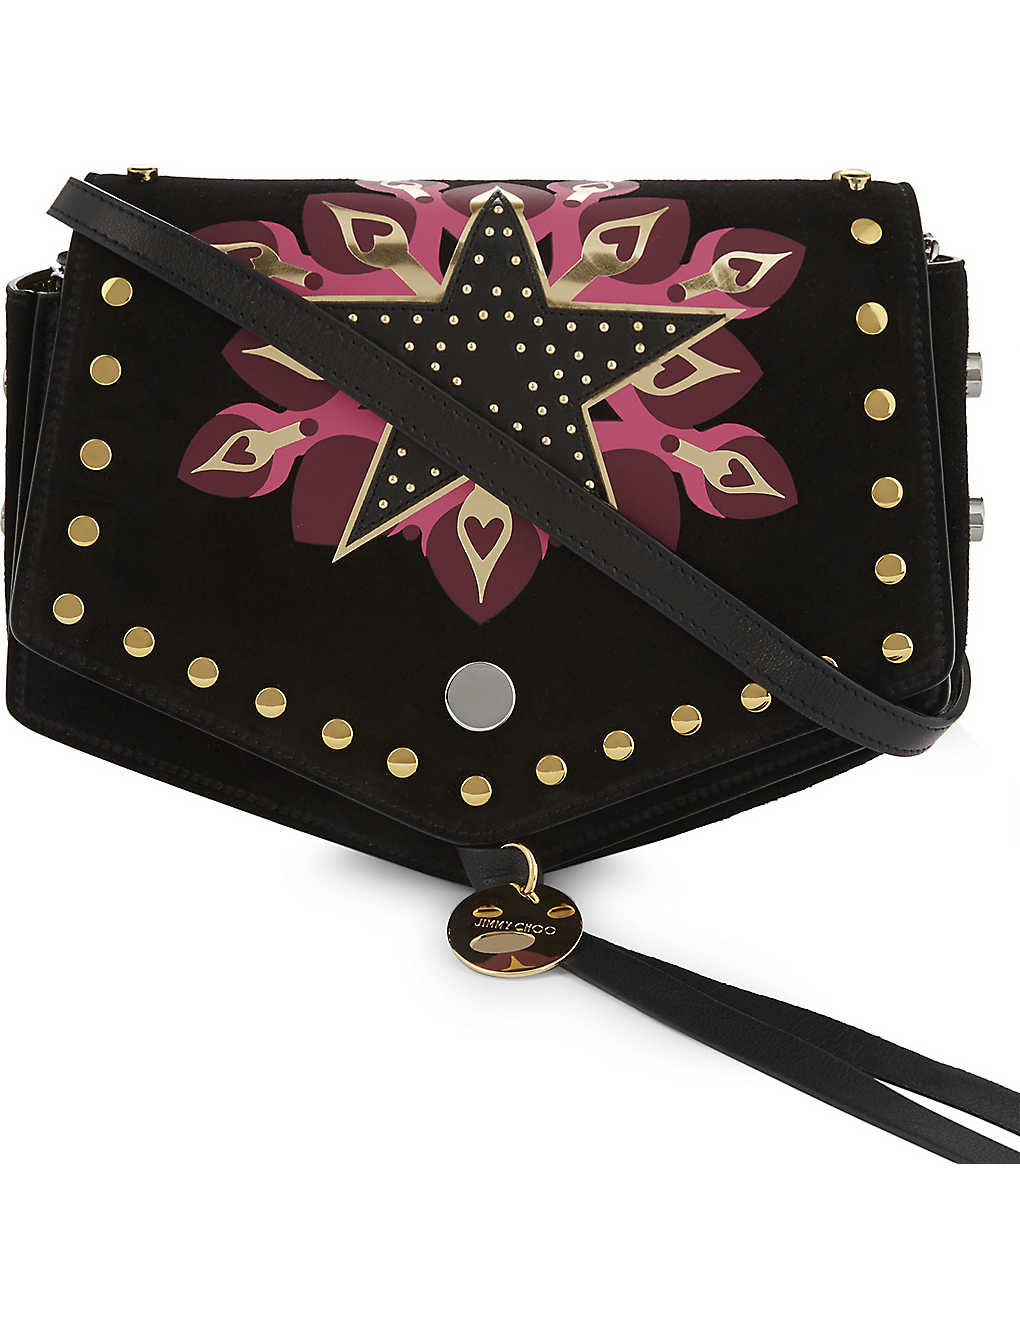 964d32bb44e39 JIMMY CHOO - Arrow Galaxy Star stud-embellished suede cross-body bag ...